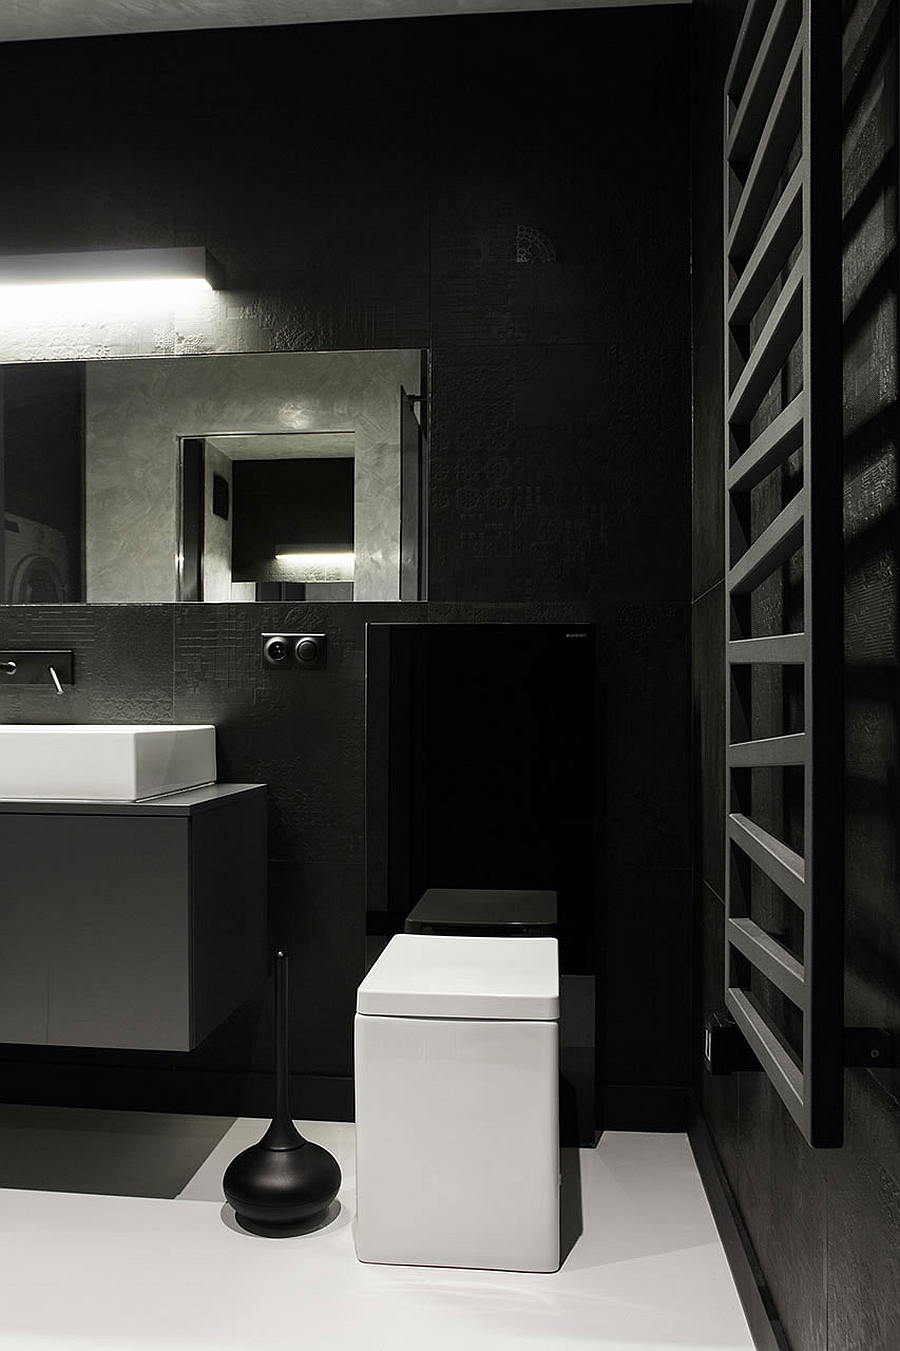 small kitchen ideas pictures sink spray hose replacement black and white apartment in poland exudes refined ...